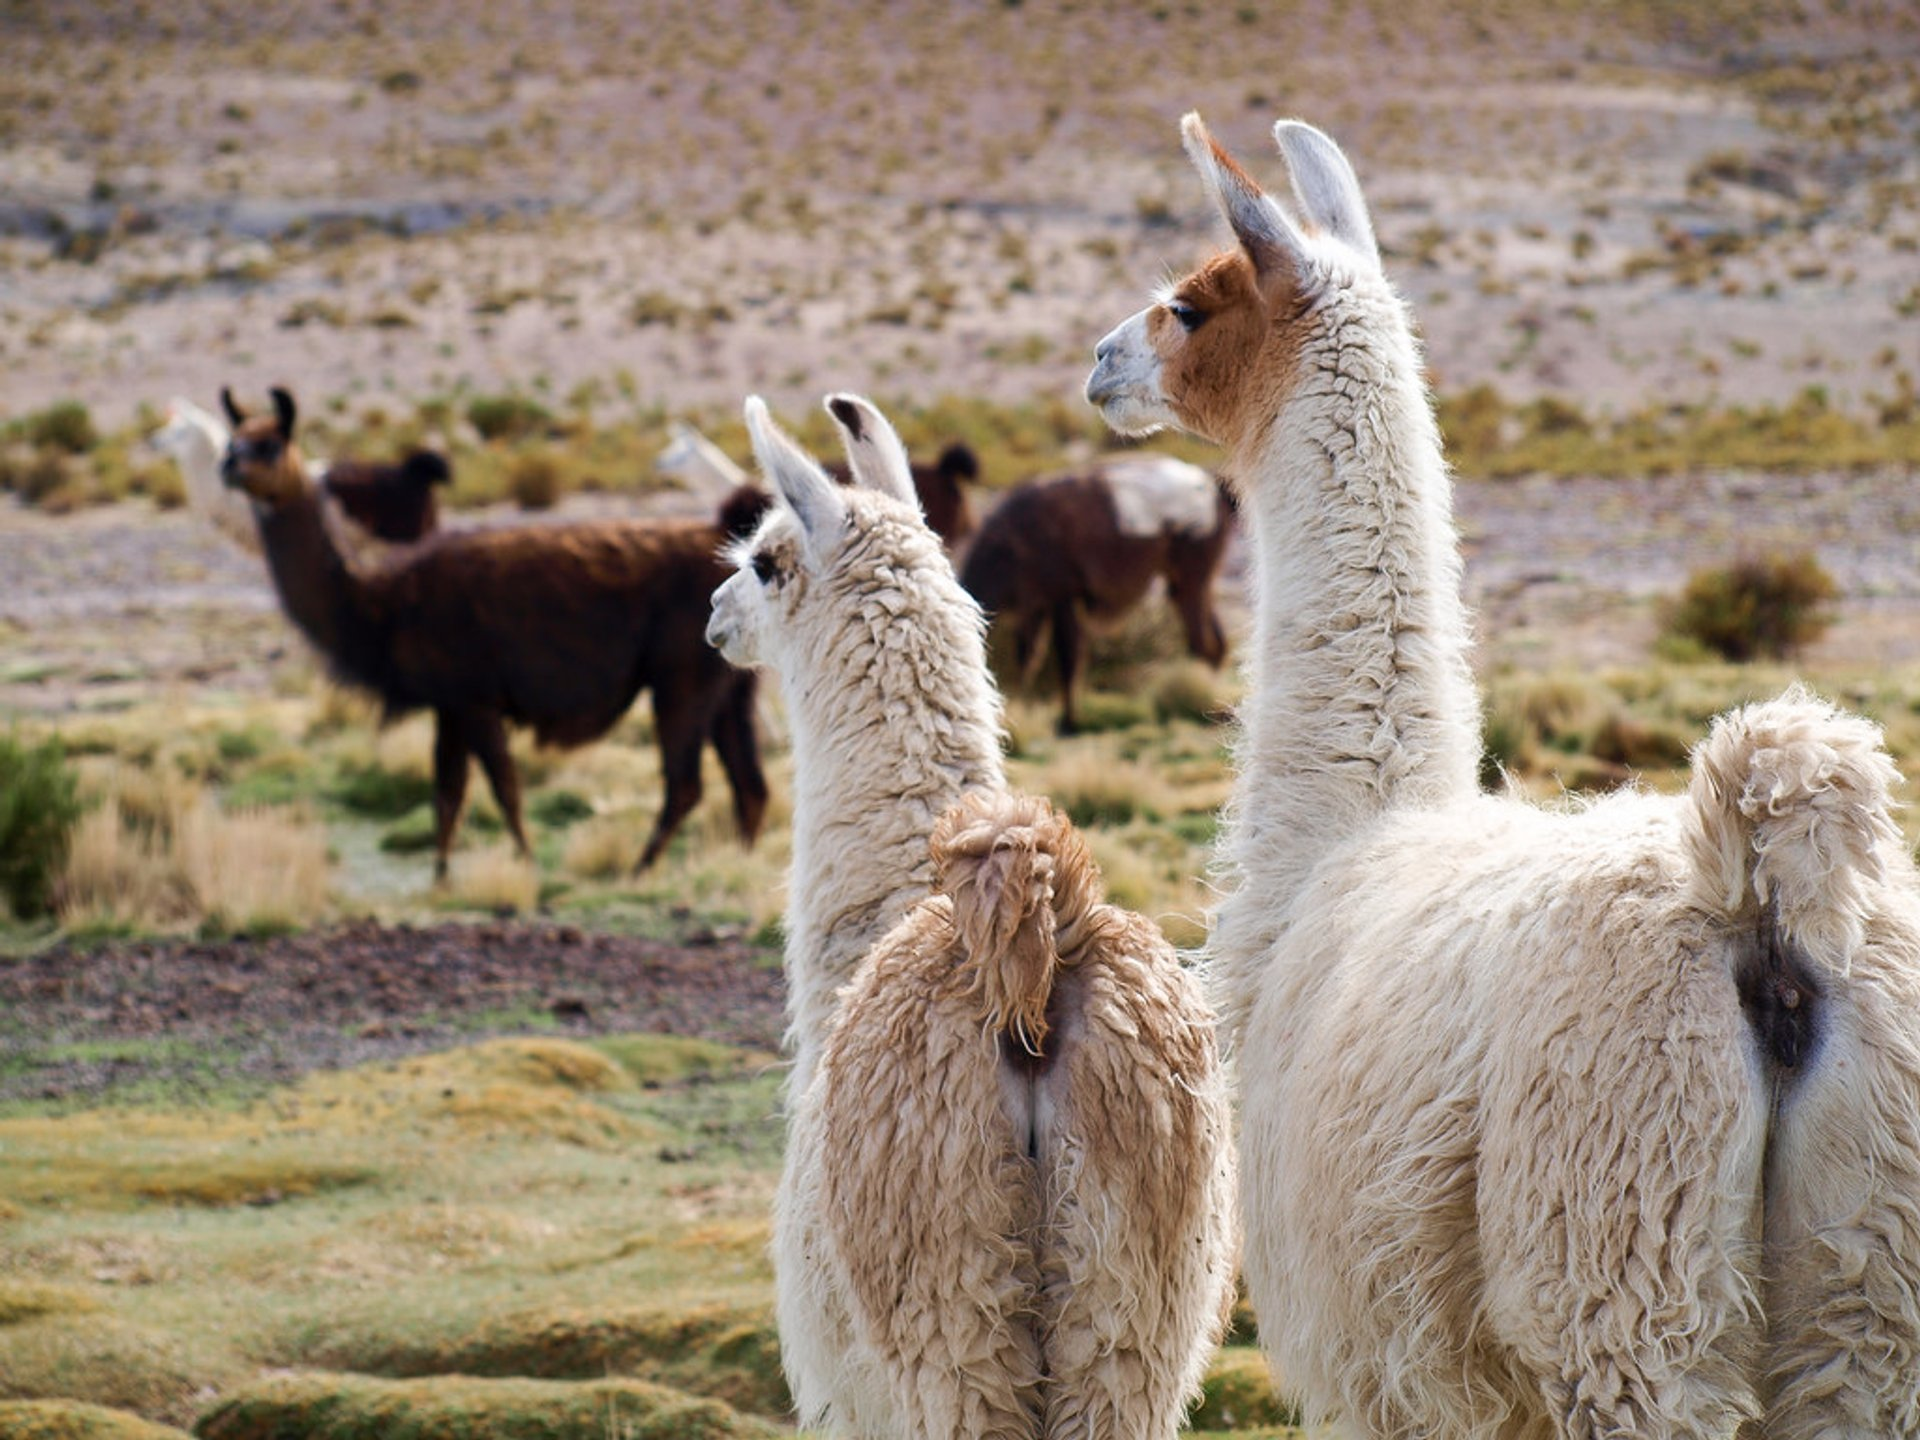 Llamas in Bolivia - Best Season 2020